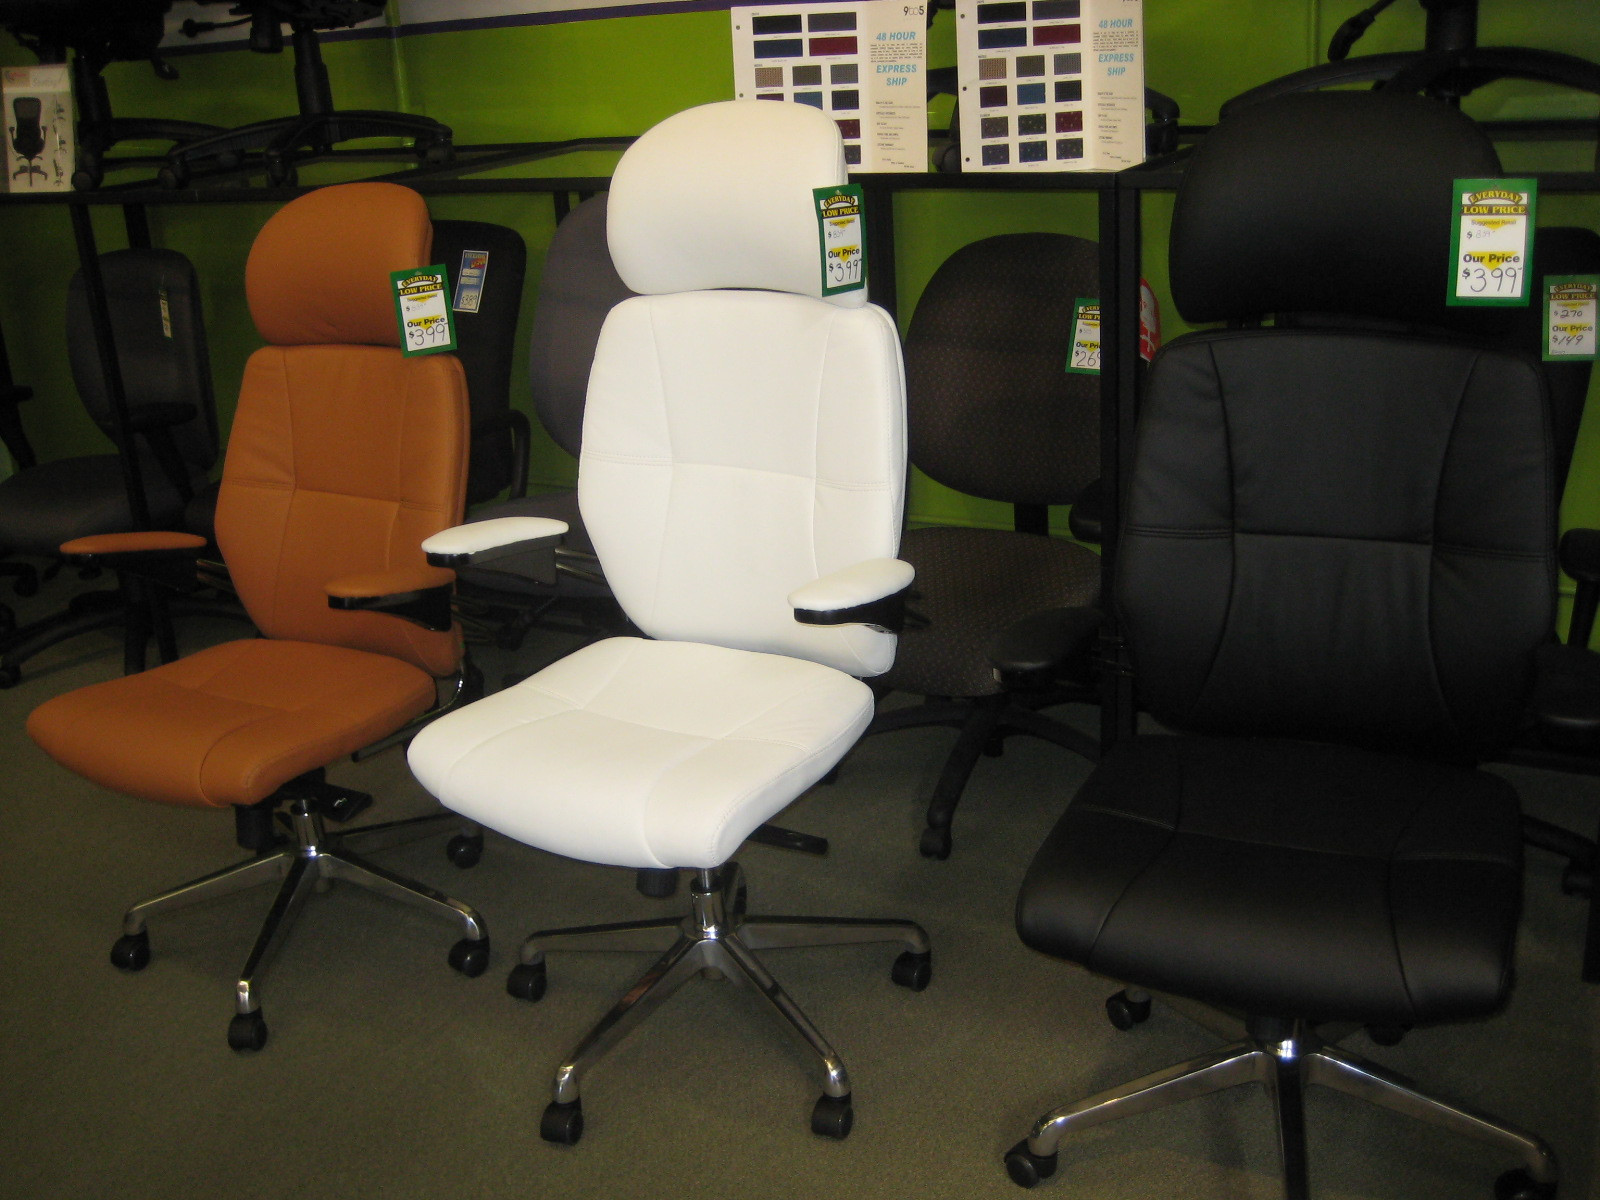 Best ideas about Used Office Furniture San Diego . Save or Pin Used fice Furniture In San Diego including office chairs Now.